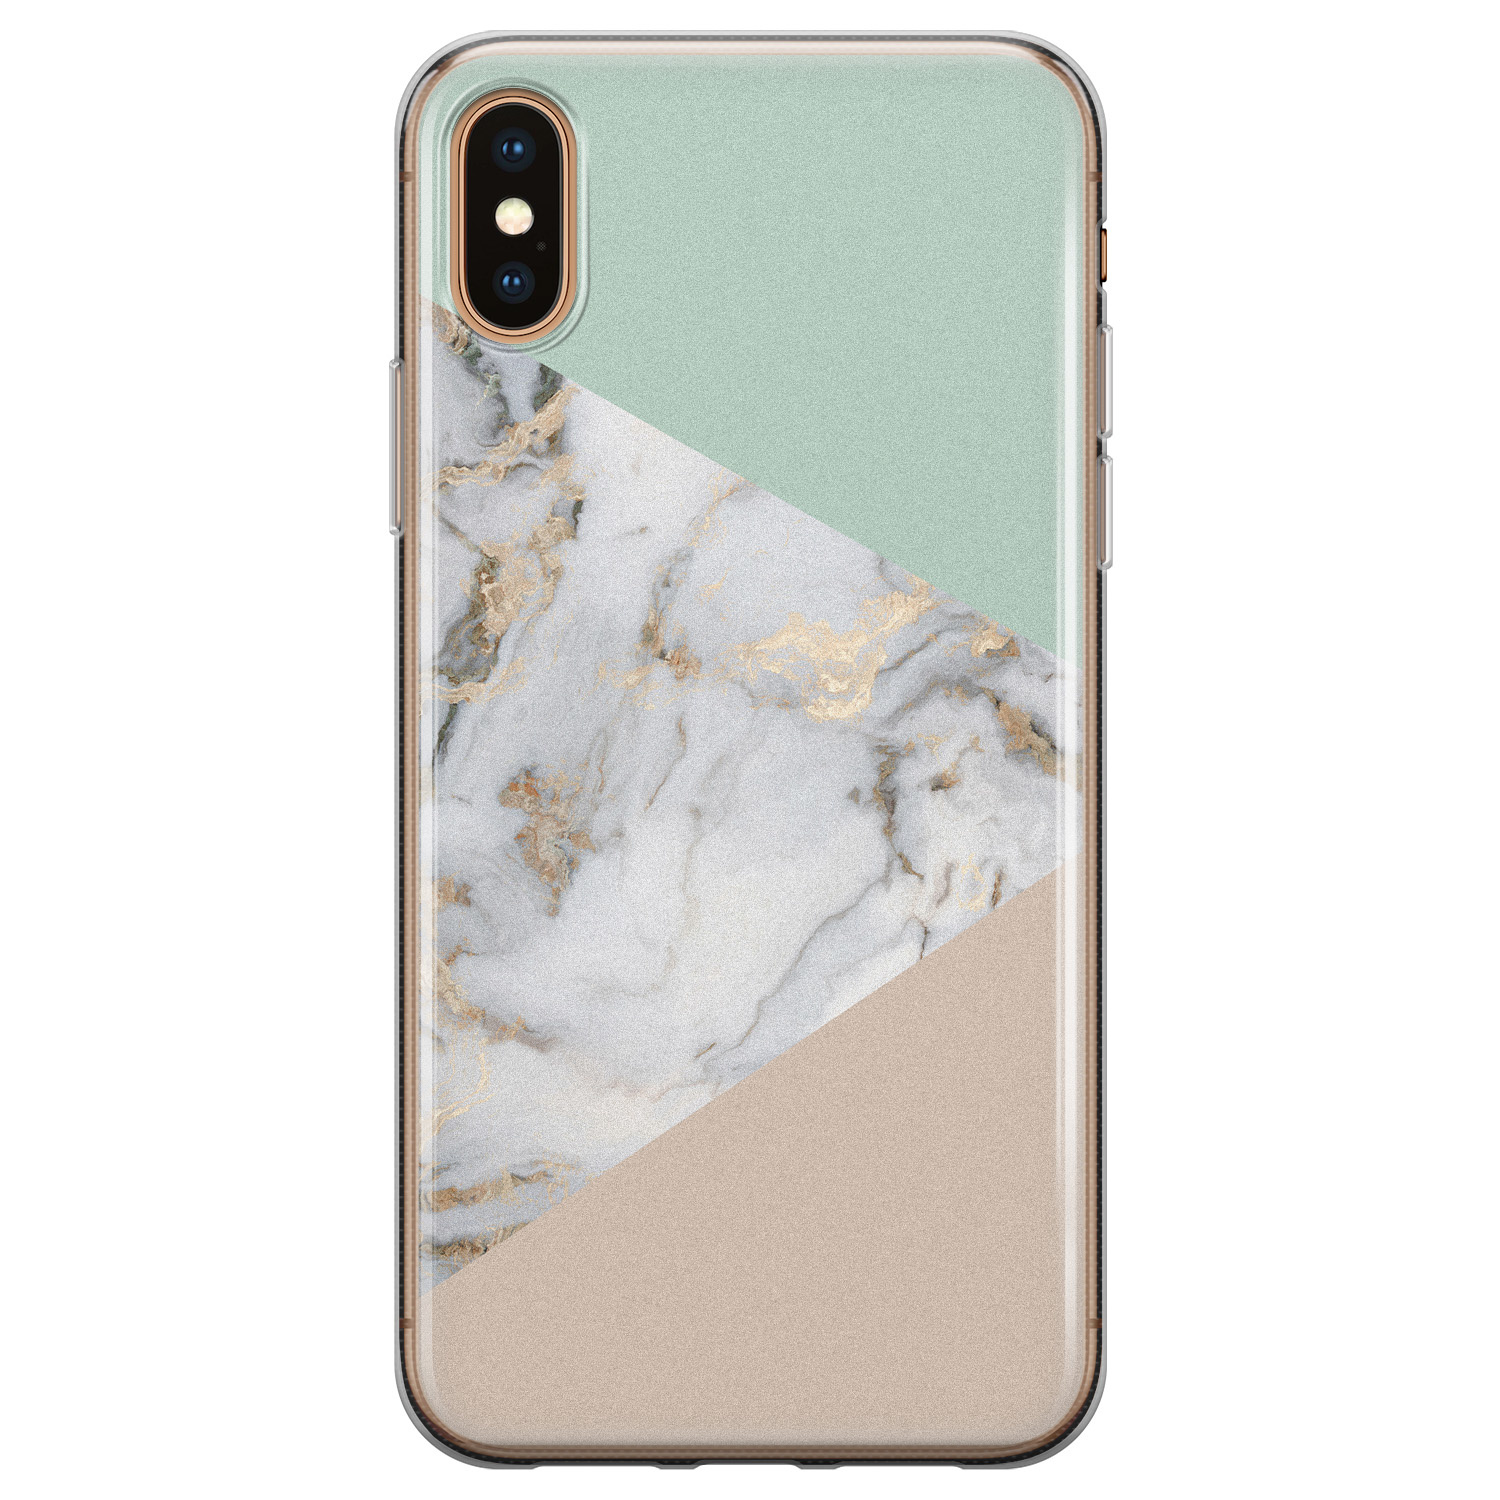 iPhone X/XS siliconen hoesje - Marmer pastel mix